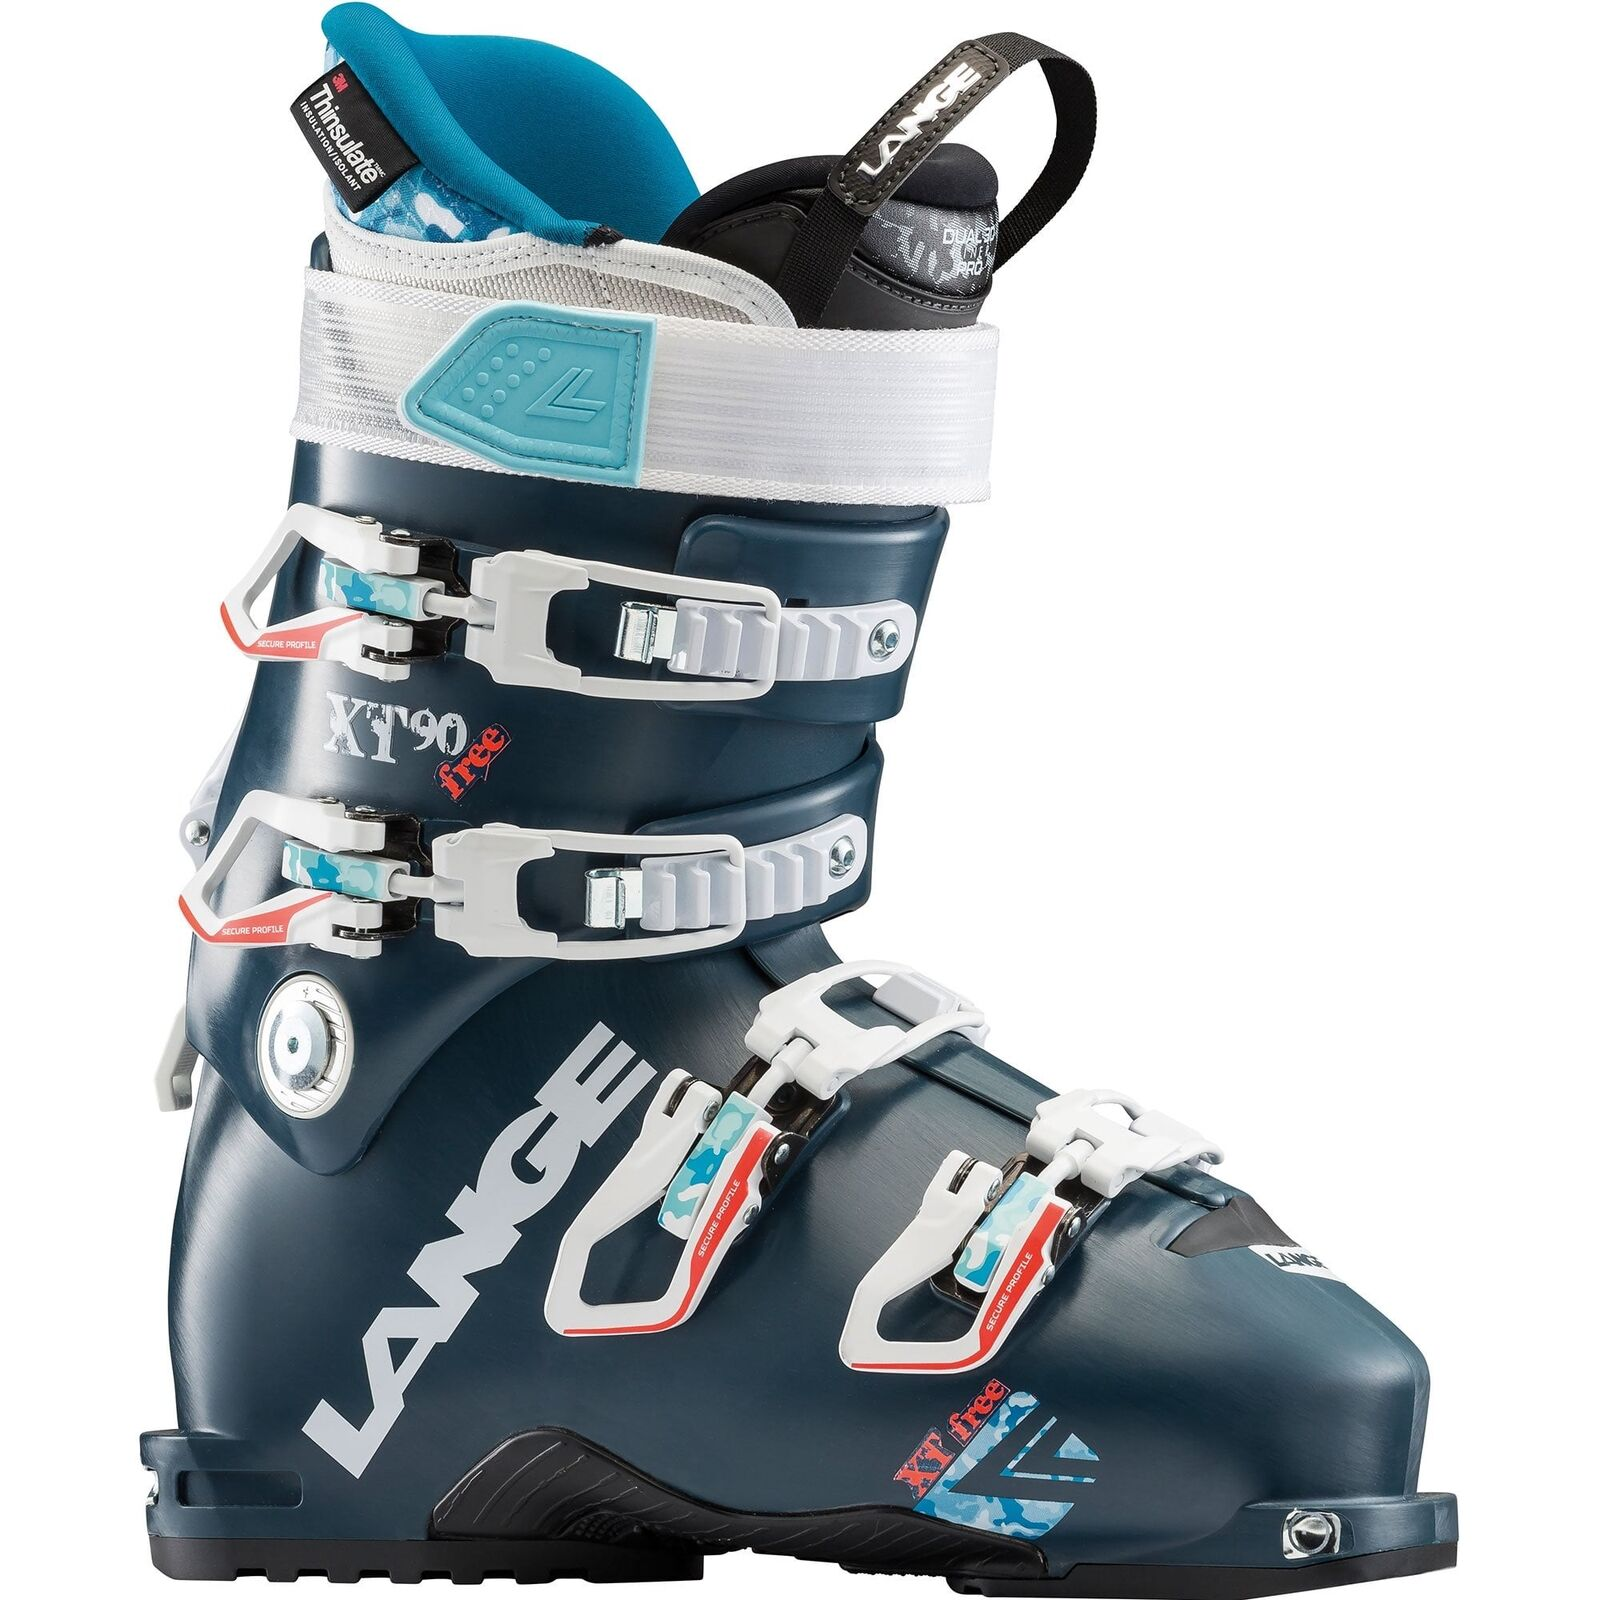 Lange XT 90 Free Women's Ski Touring  Boot  discount low price